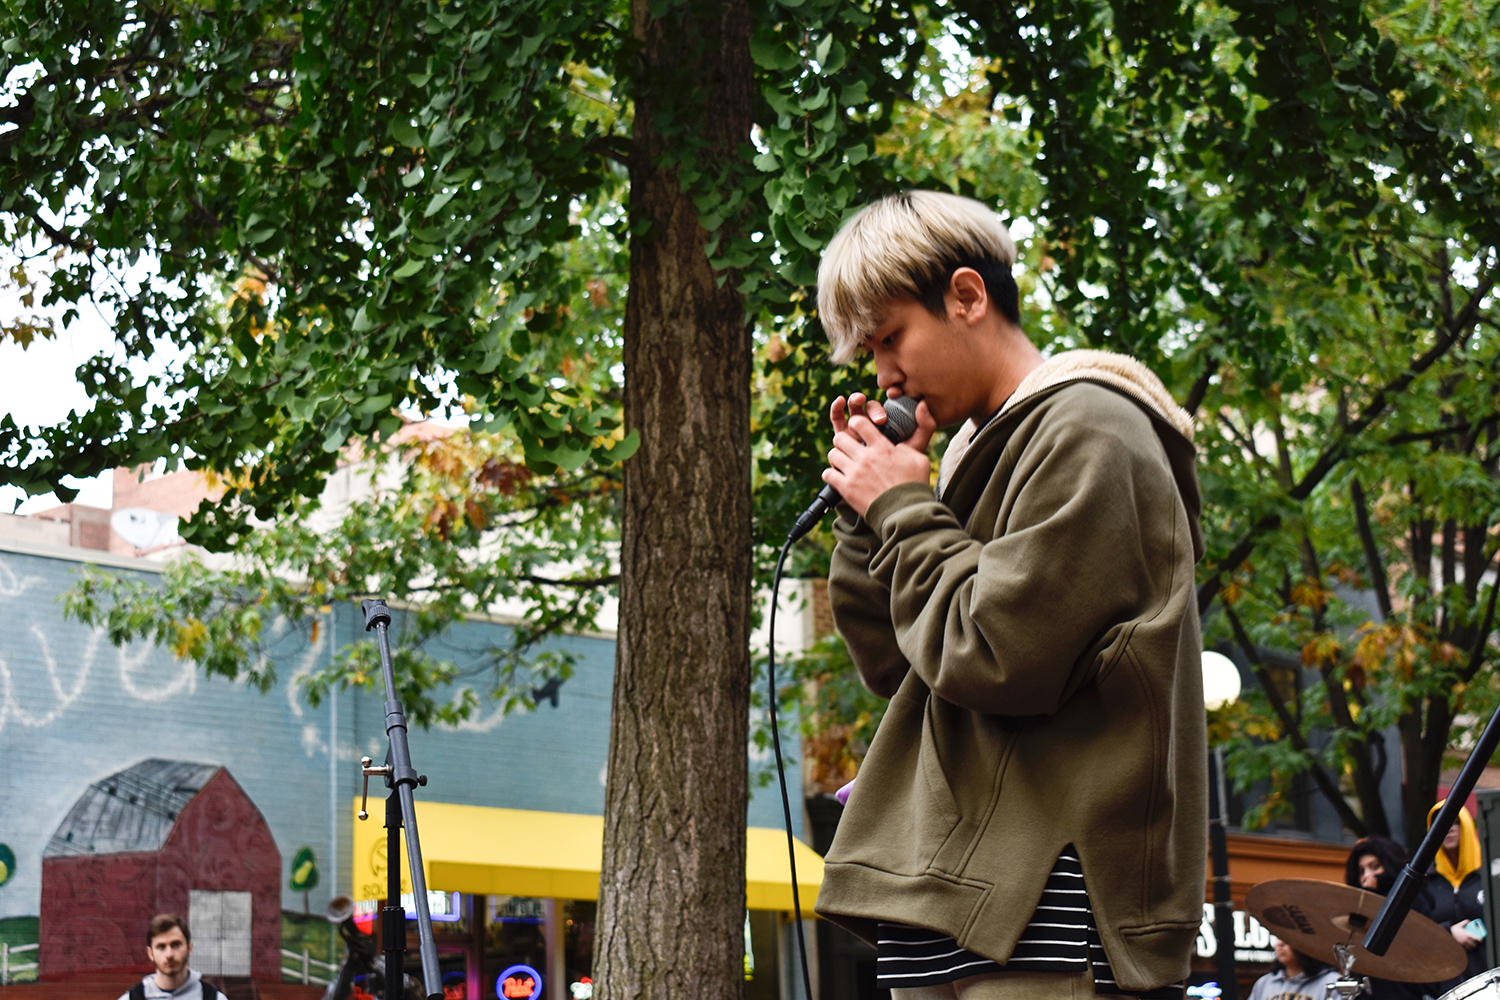 Yusong Ju raps at the University of Iowa Chinese Music Club's outdoor performance at the Iowa City Ped Mall on Saturday, Oct. 13, 2018.